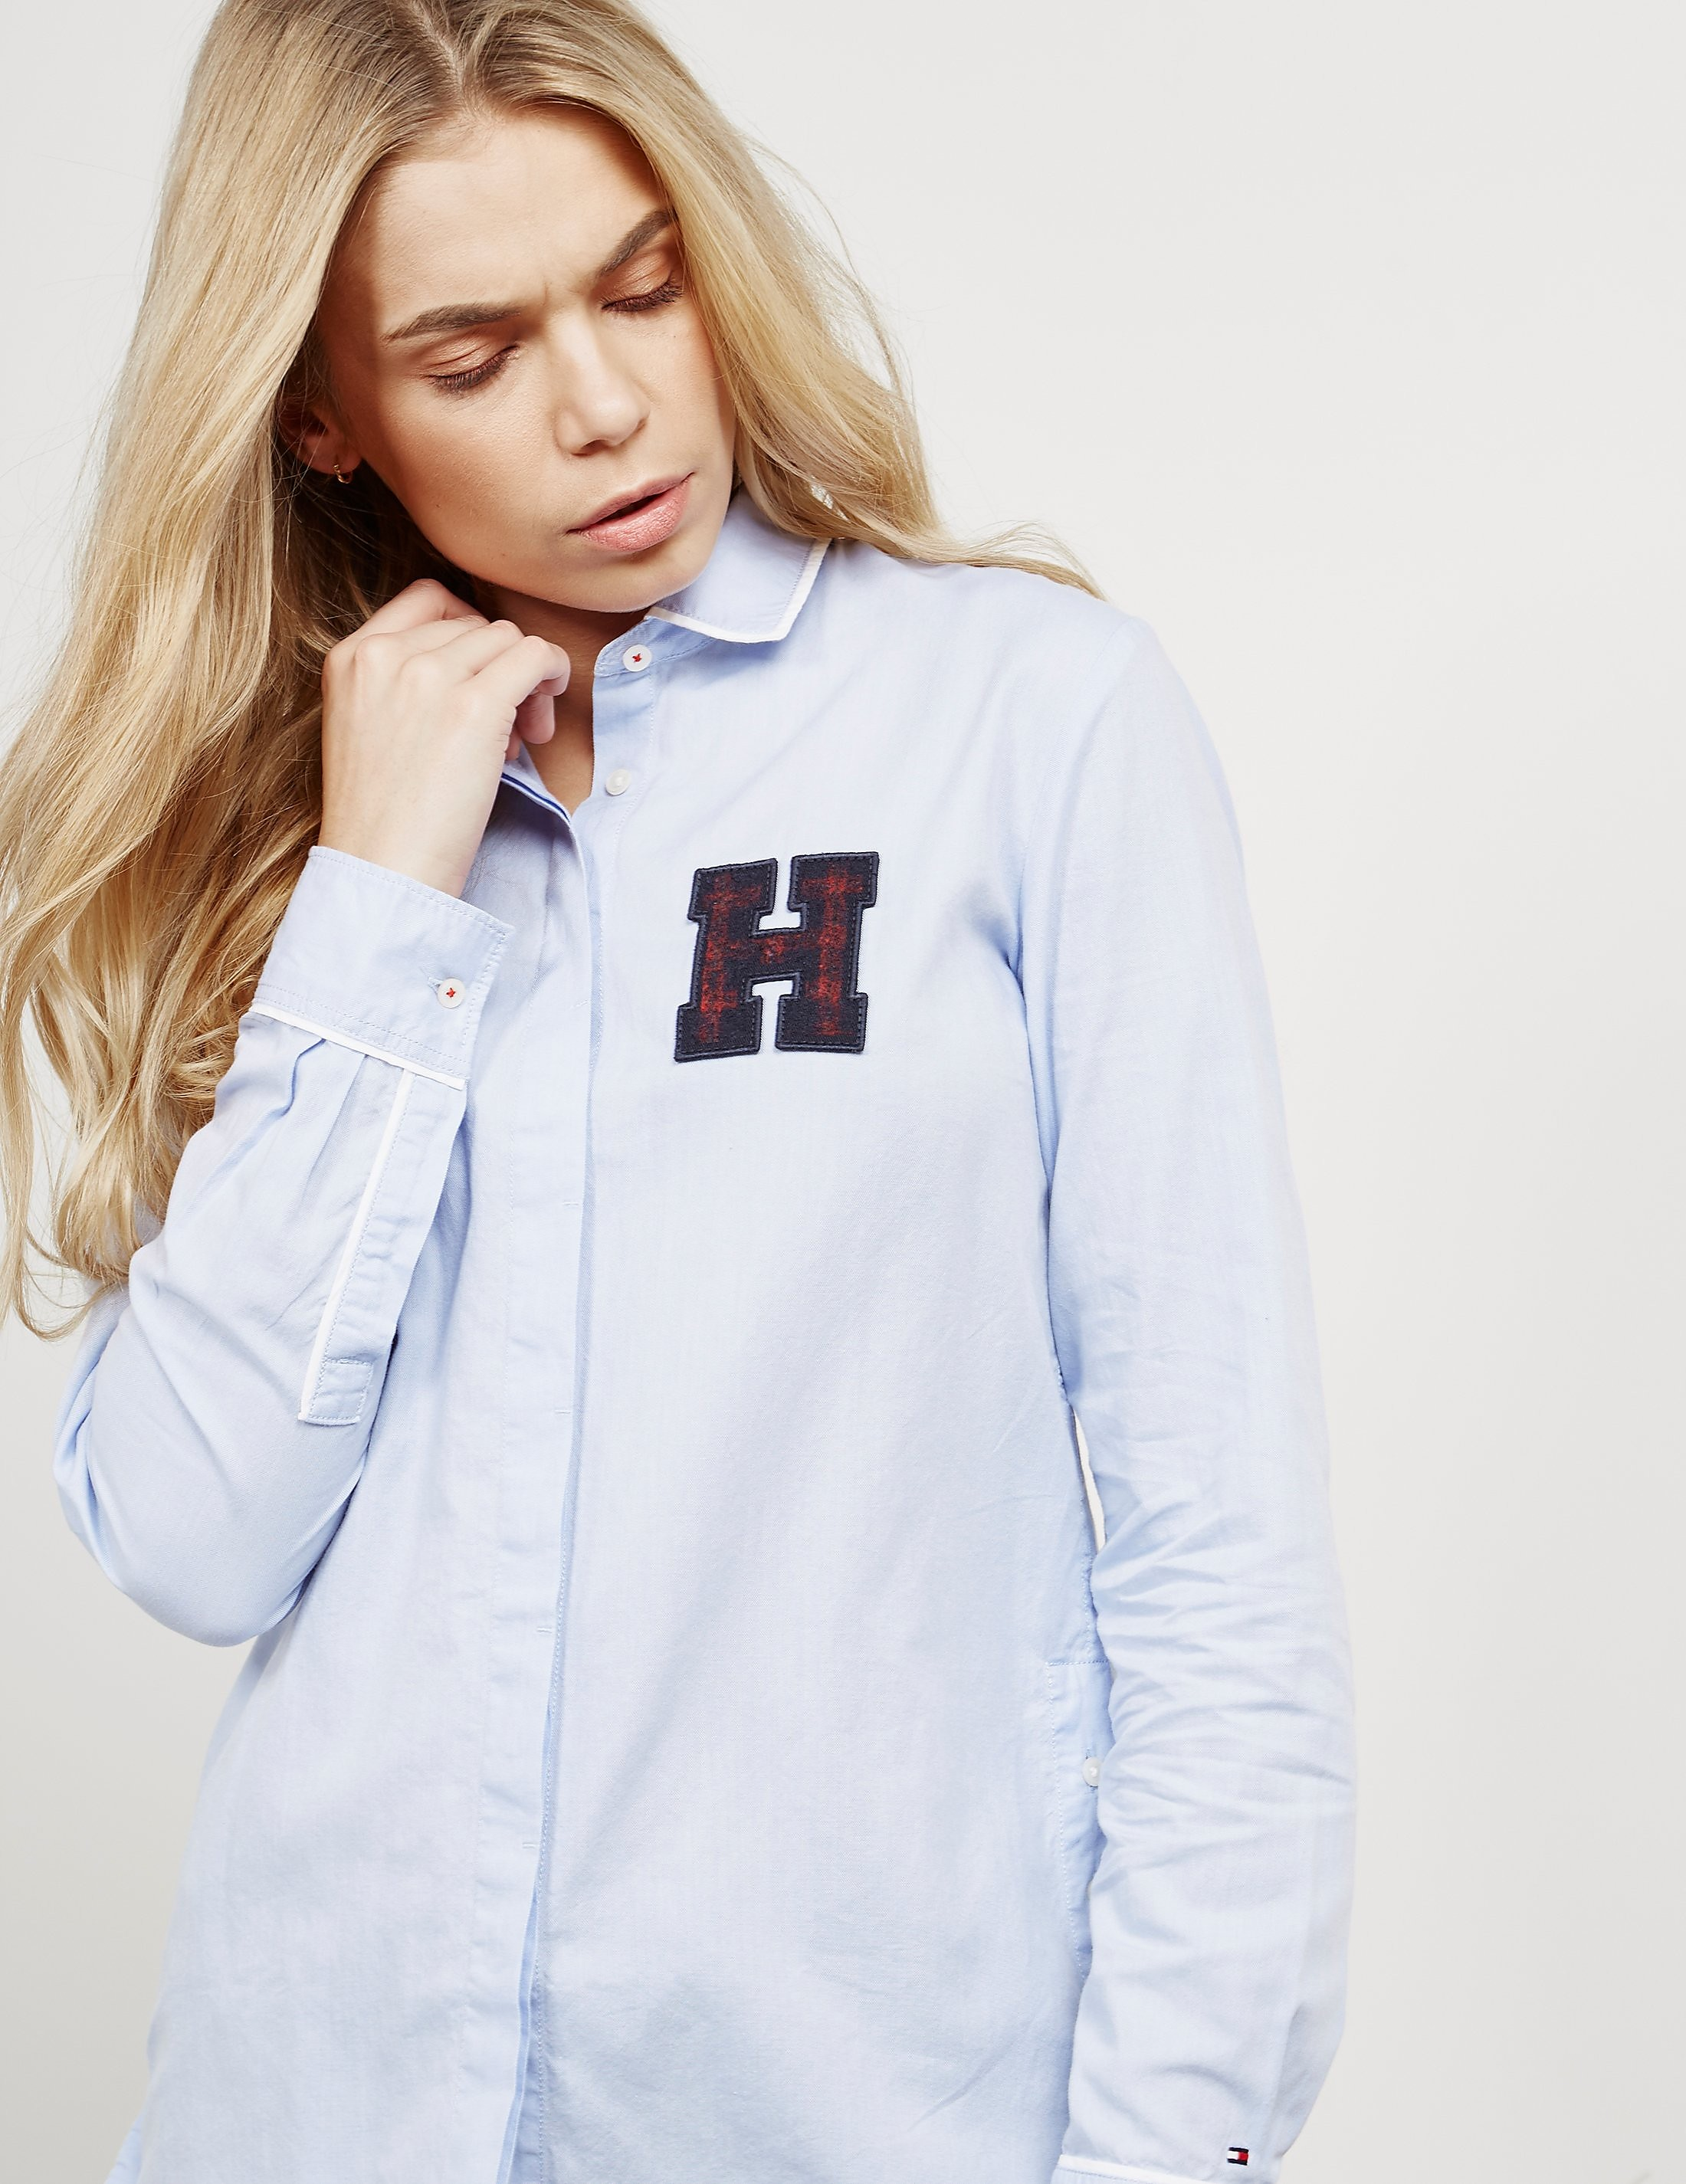 Tommy Hilfiger Julia Long Sleeve Shirt - Online Exclusive